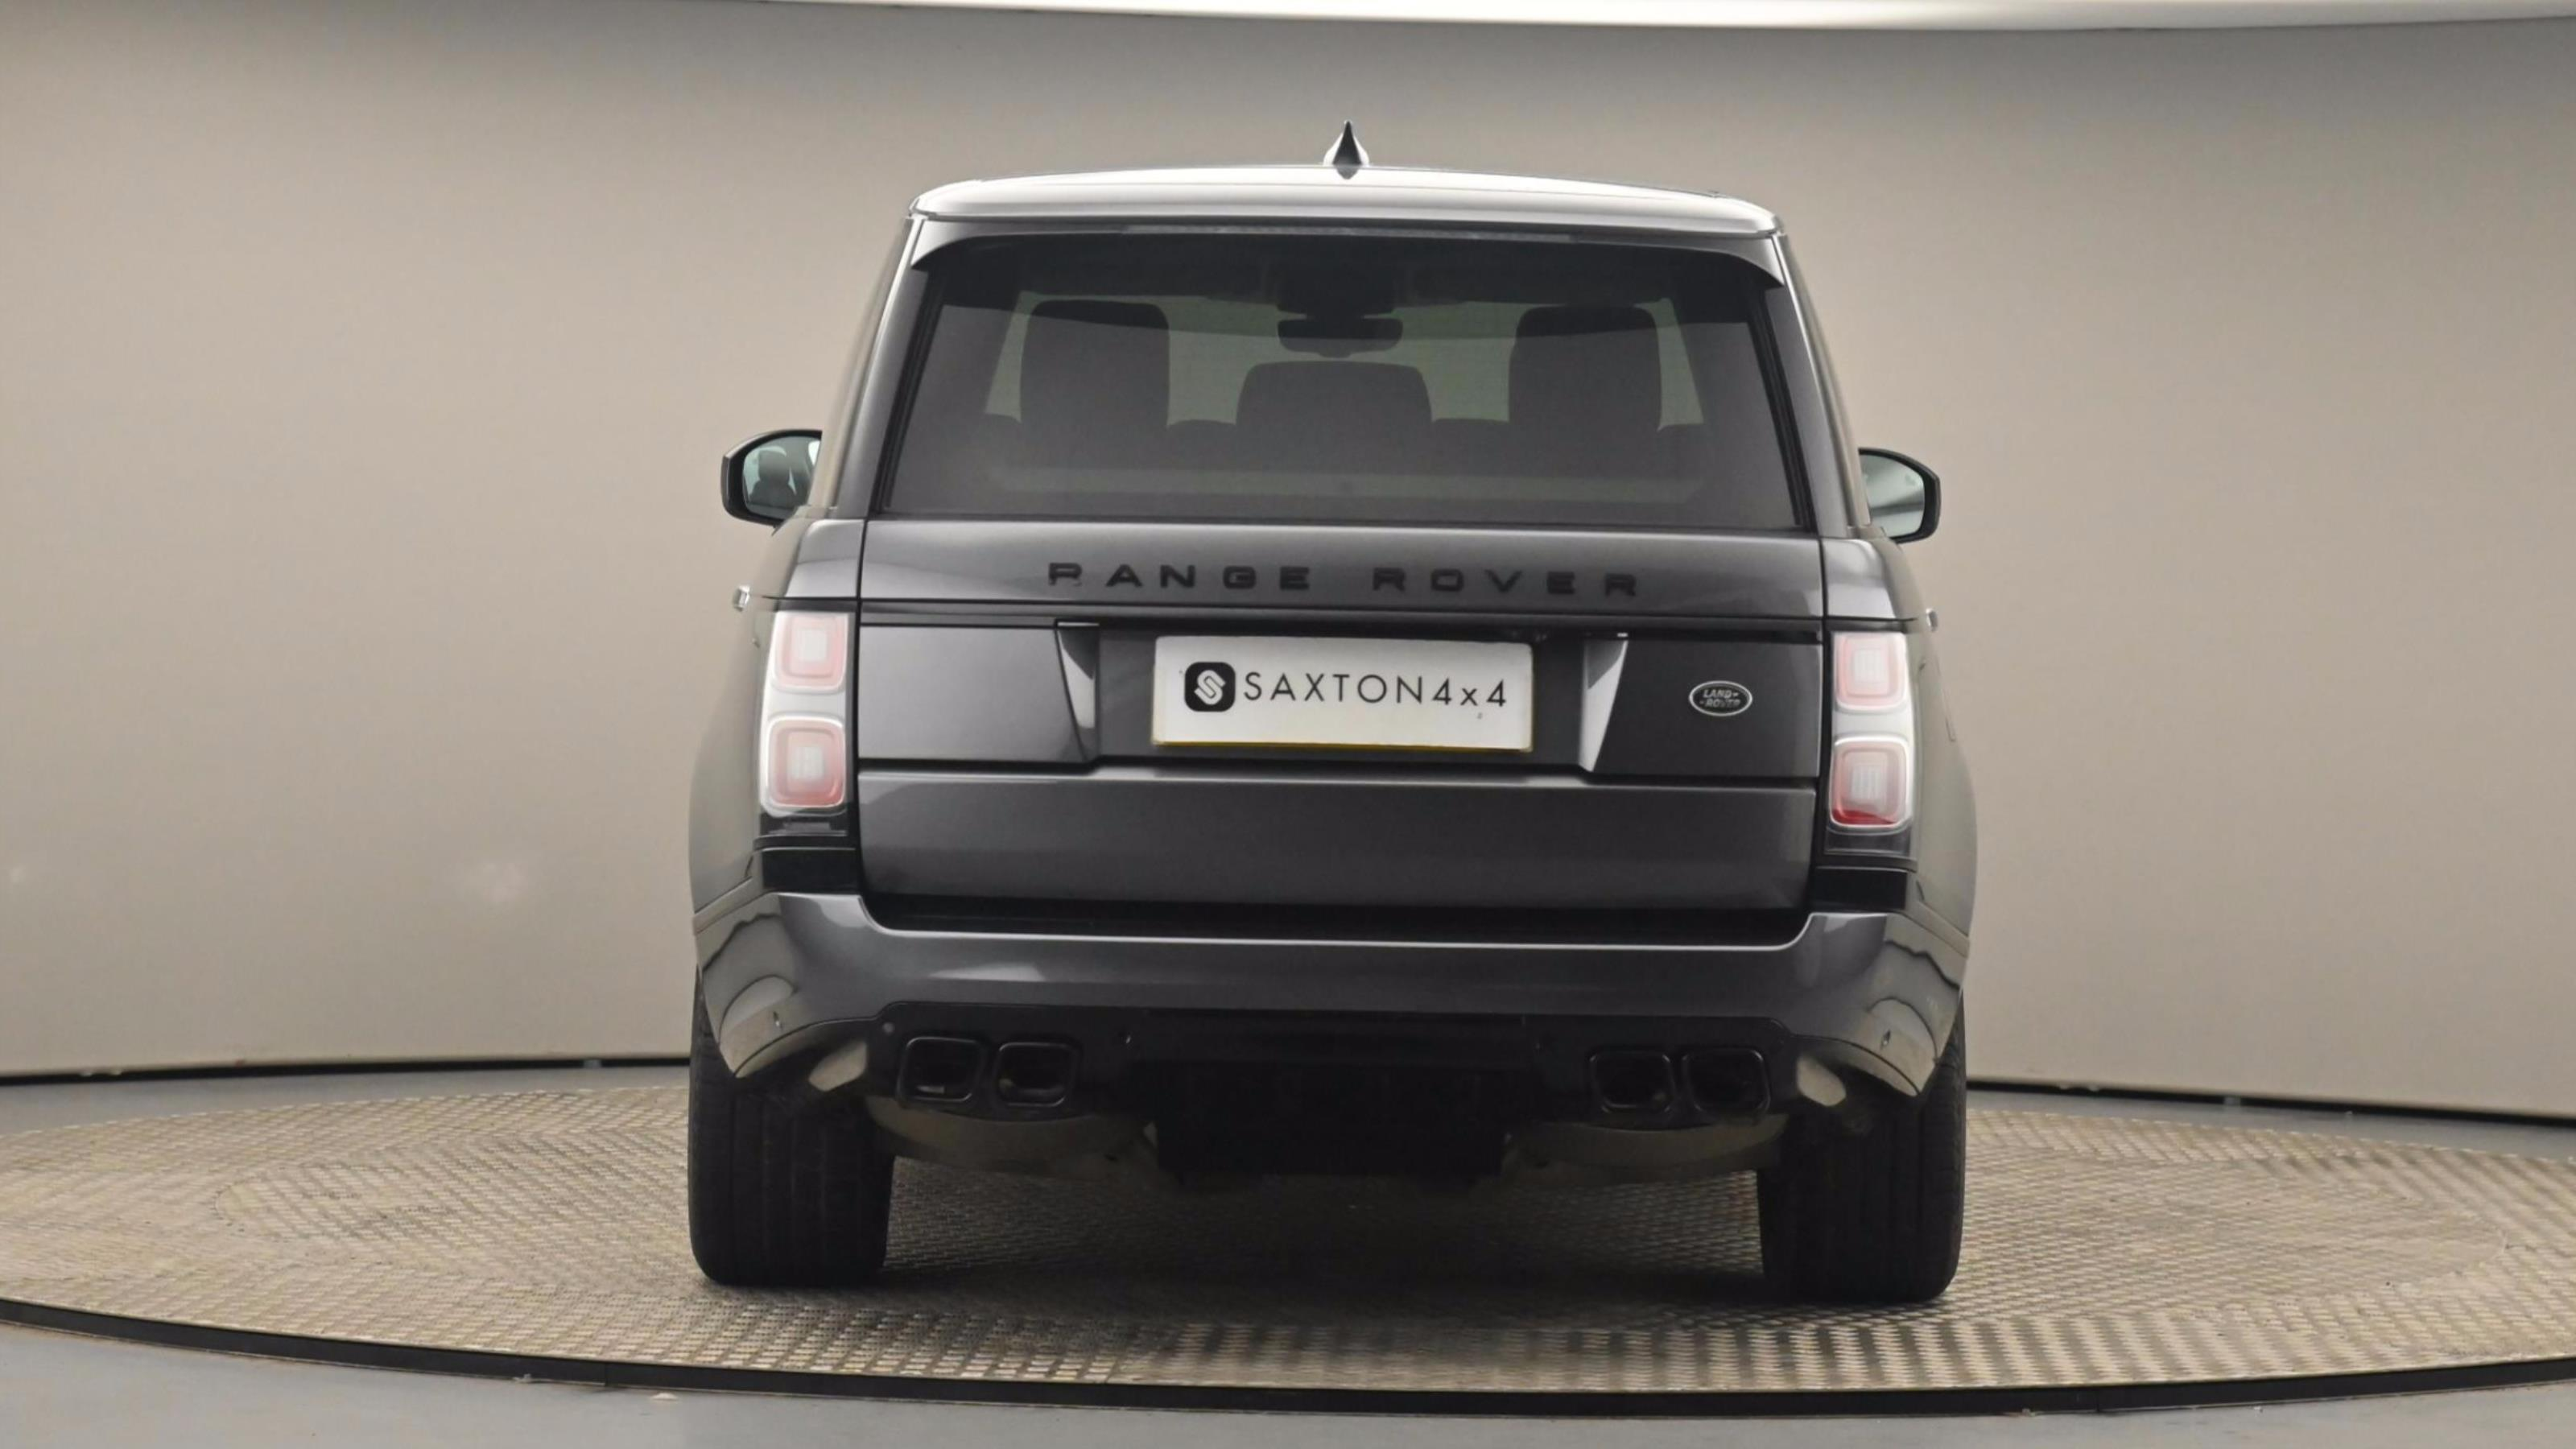 Used 2018 Land Rover RANGE ROVER 3.0 TDV6 Vogue SE 4dr Auto GREY at Saxton4x4